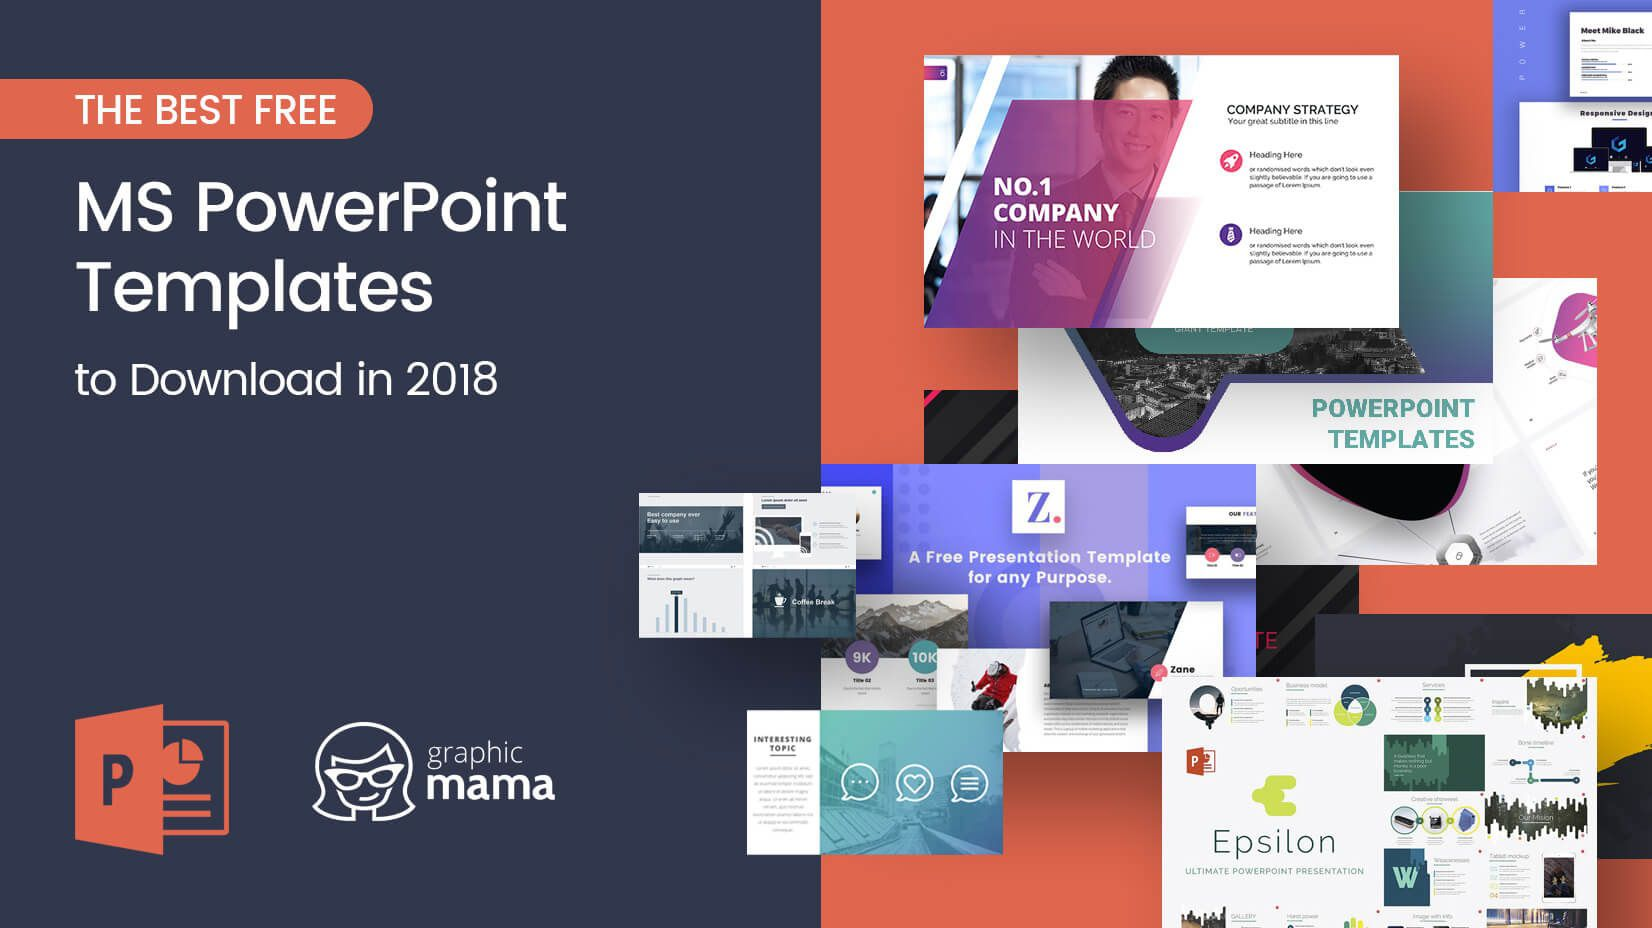 008 Excellent Best Ppt Template Free Download Sample  2019 Microsoft PowerpointFull